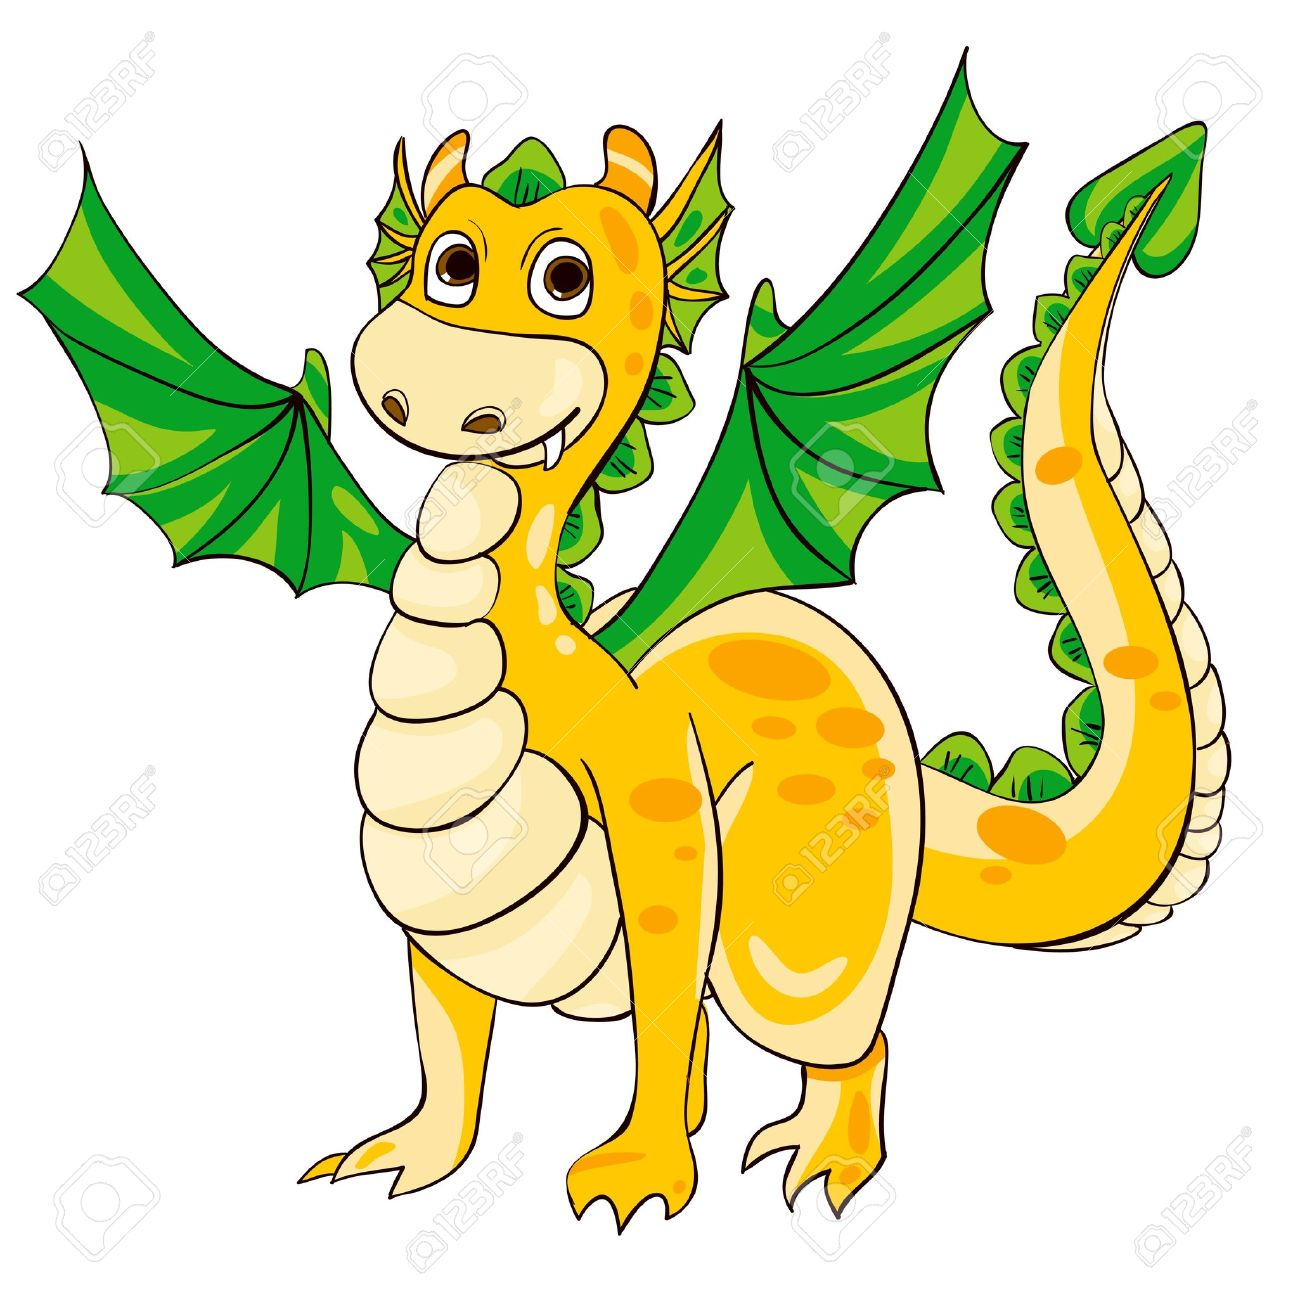 Golden Dragon With Green Wings. Vector Illustration Royalty Free.